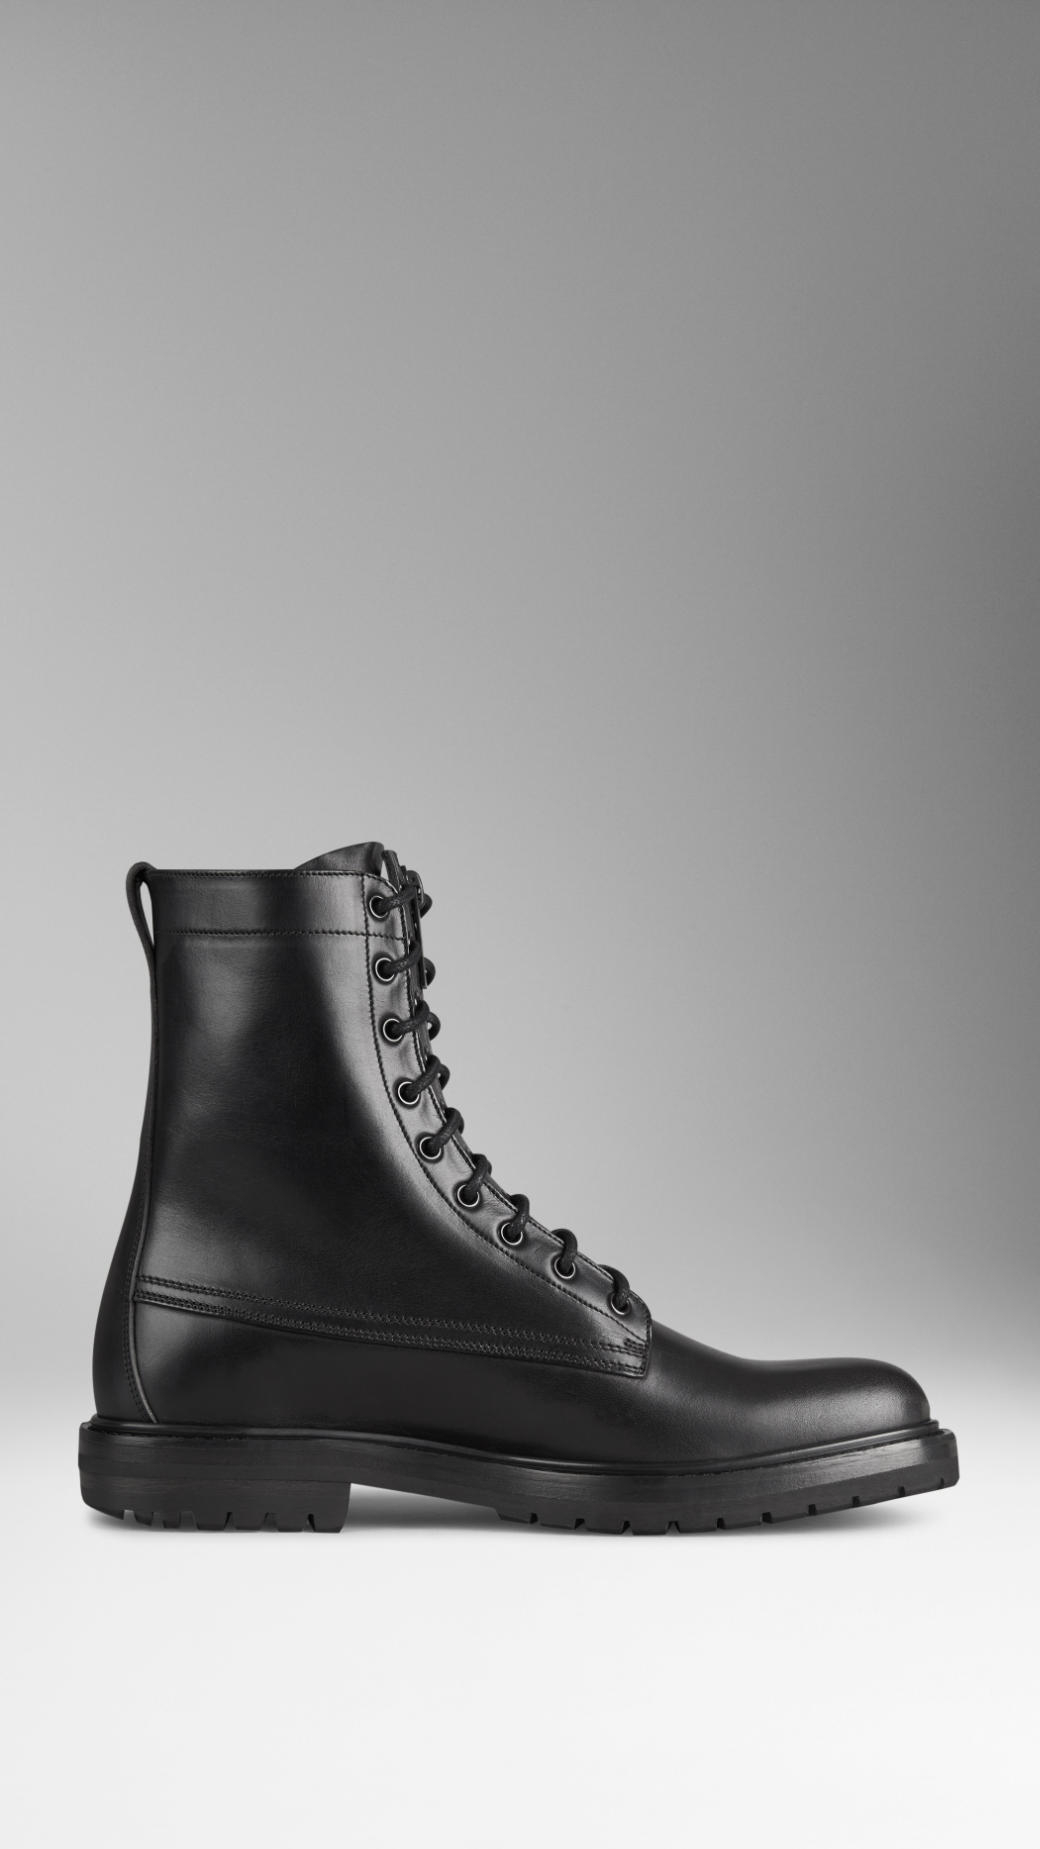 6d811aa34a9 Burberry Black Leather Military Boots for men